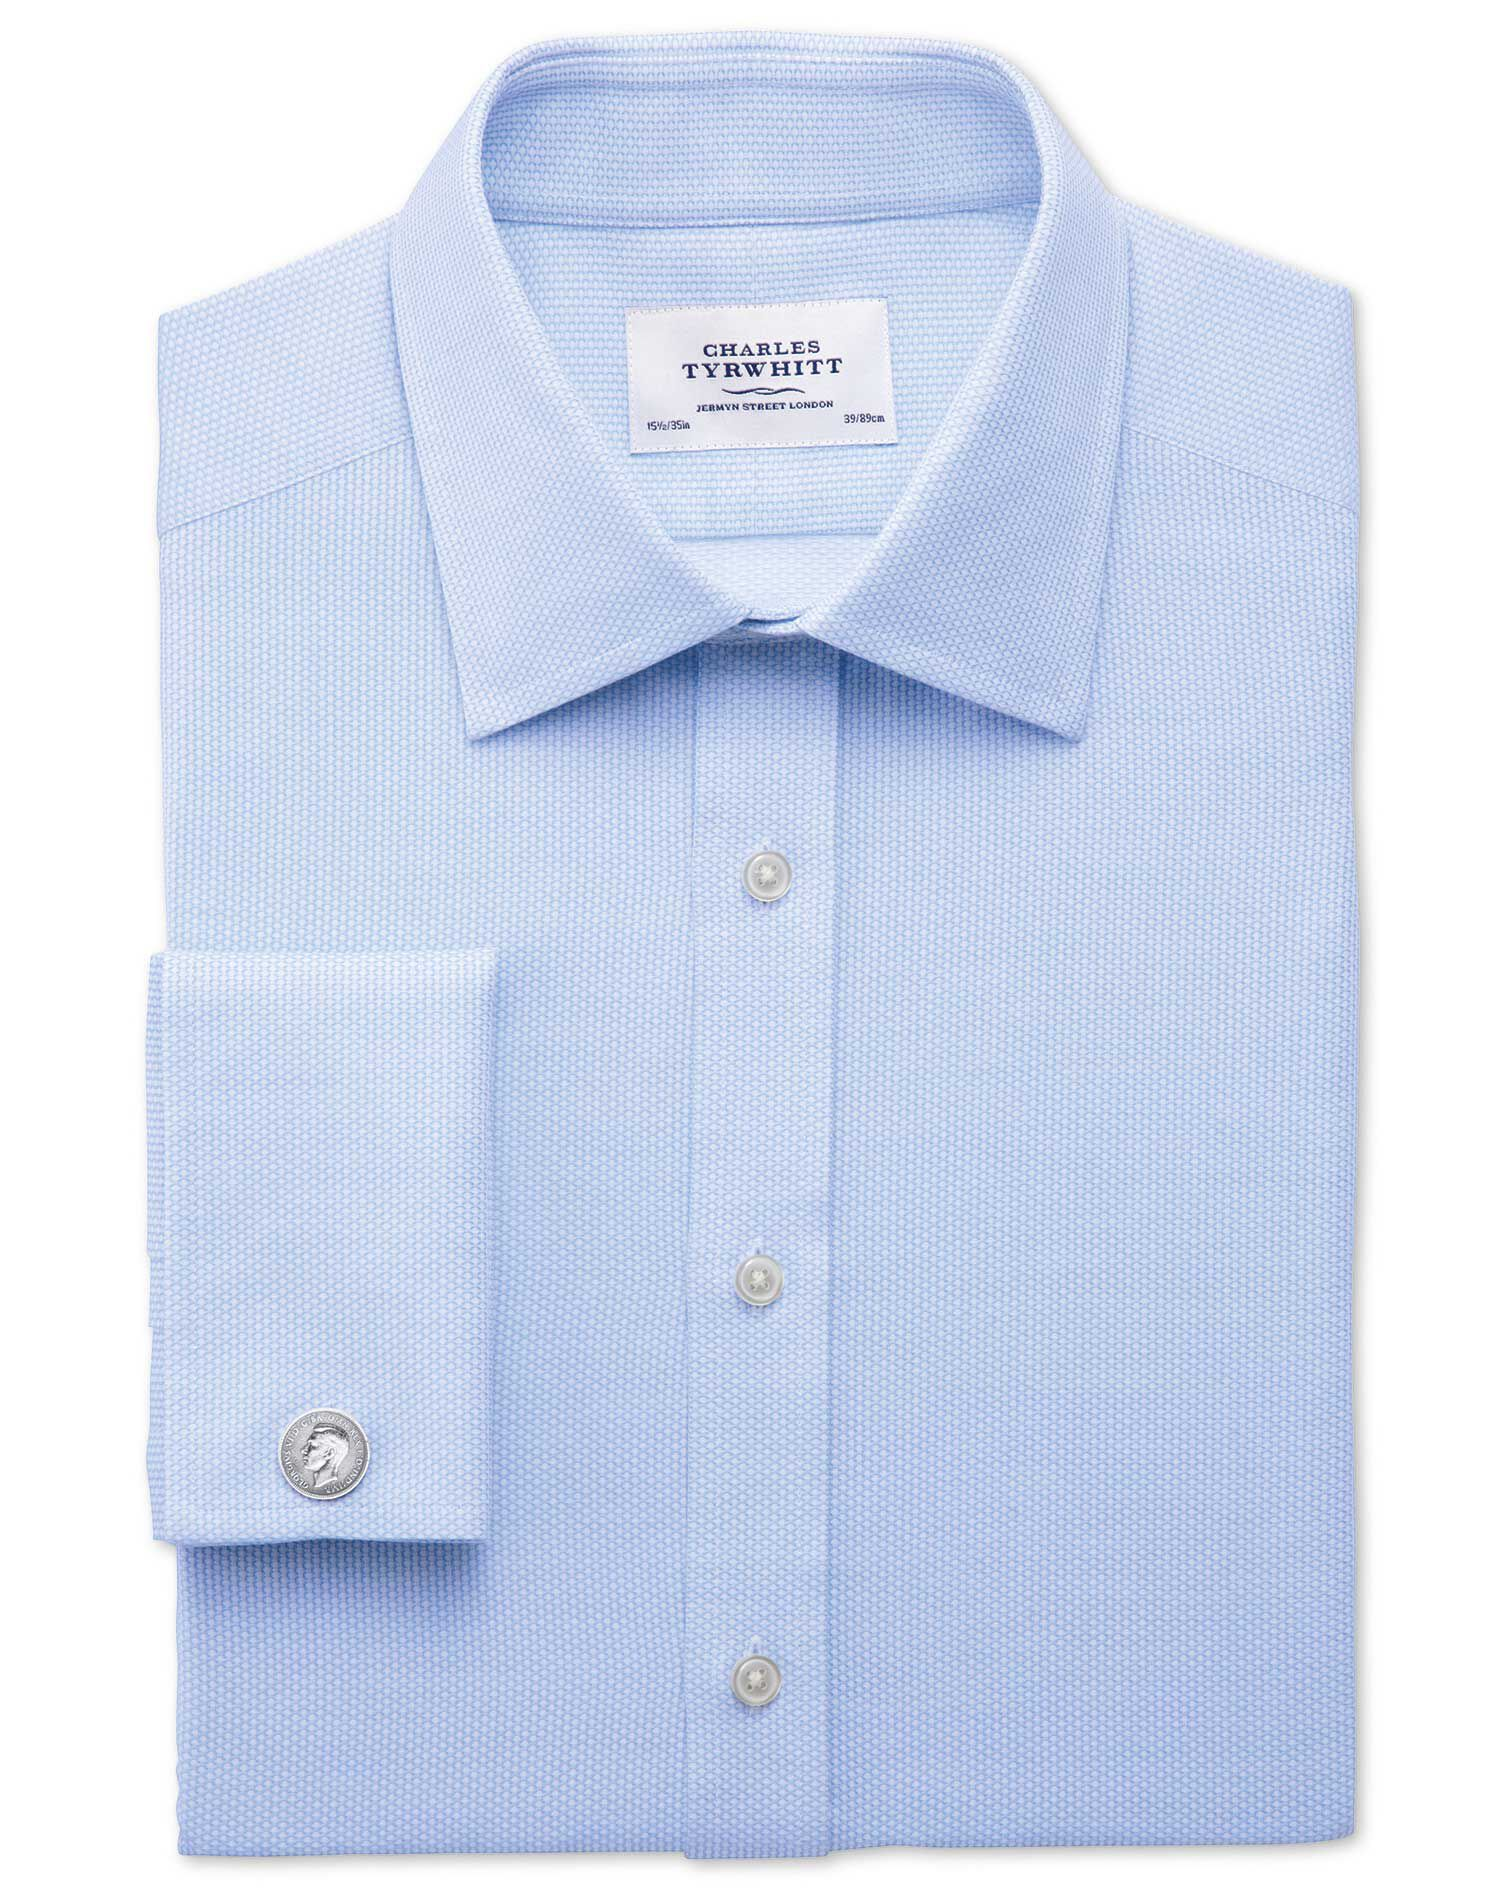 Classic Fit Egyptian Cotton Diamond Texture Sky Blue Formal Shirt Single Cuff Size 16/34 by Charles